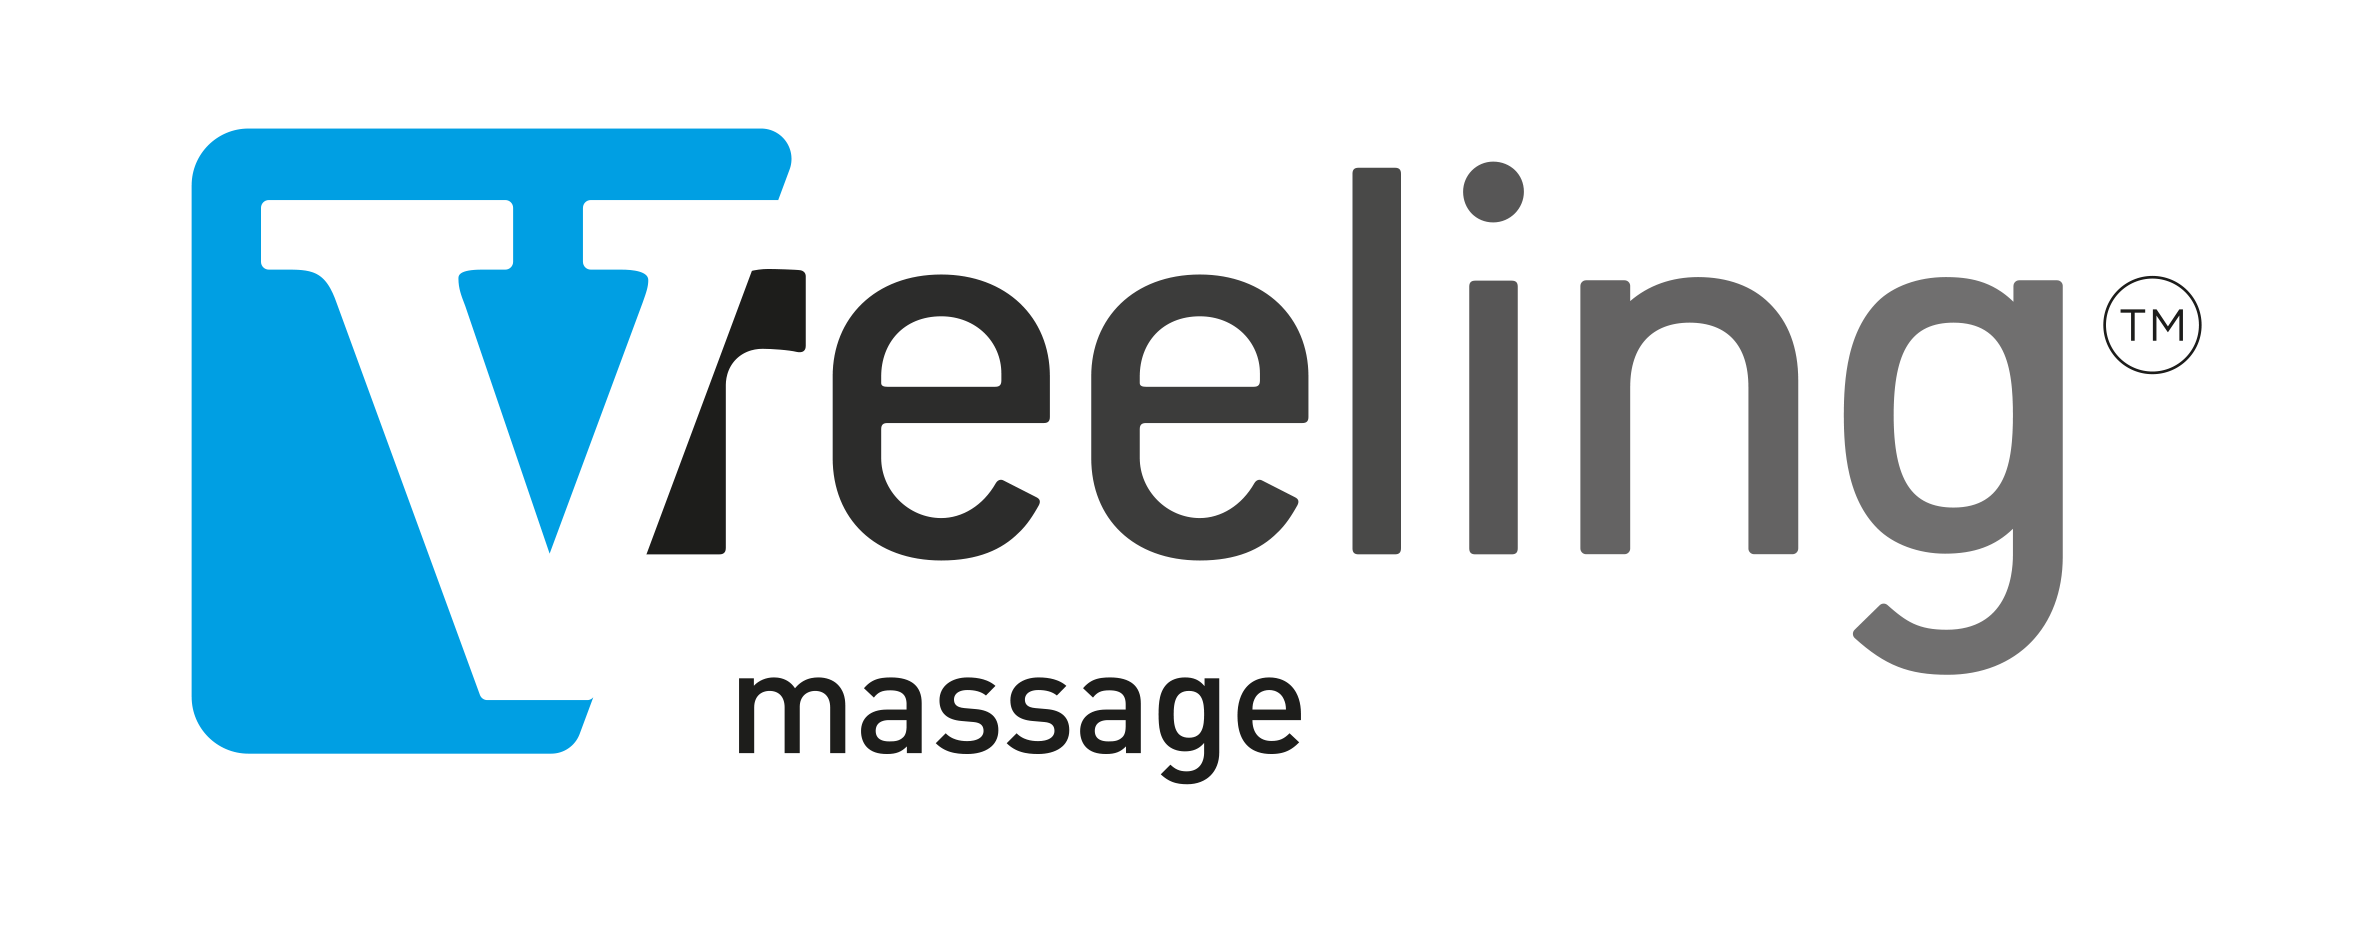 logo Vreeling massage